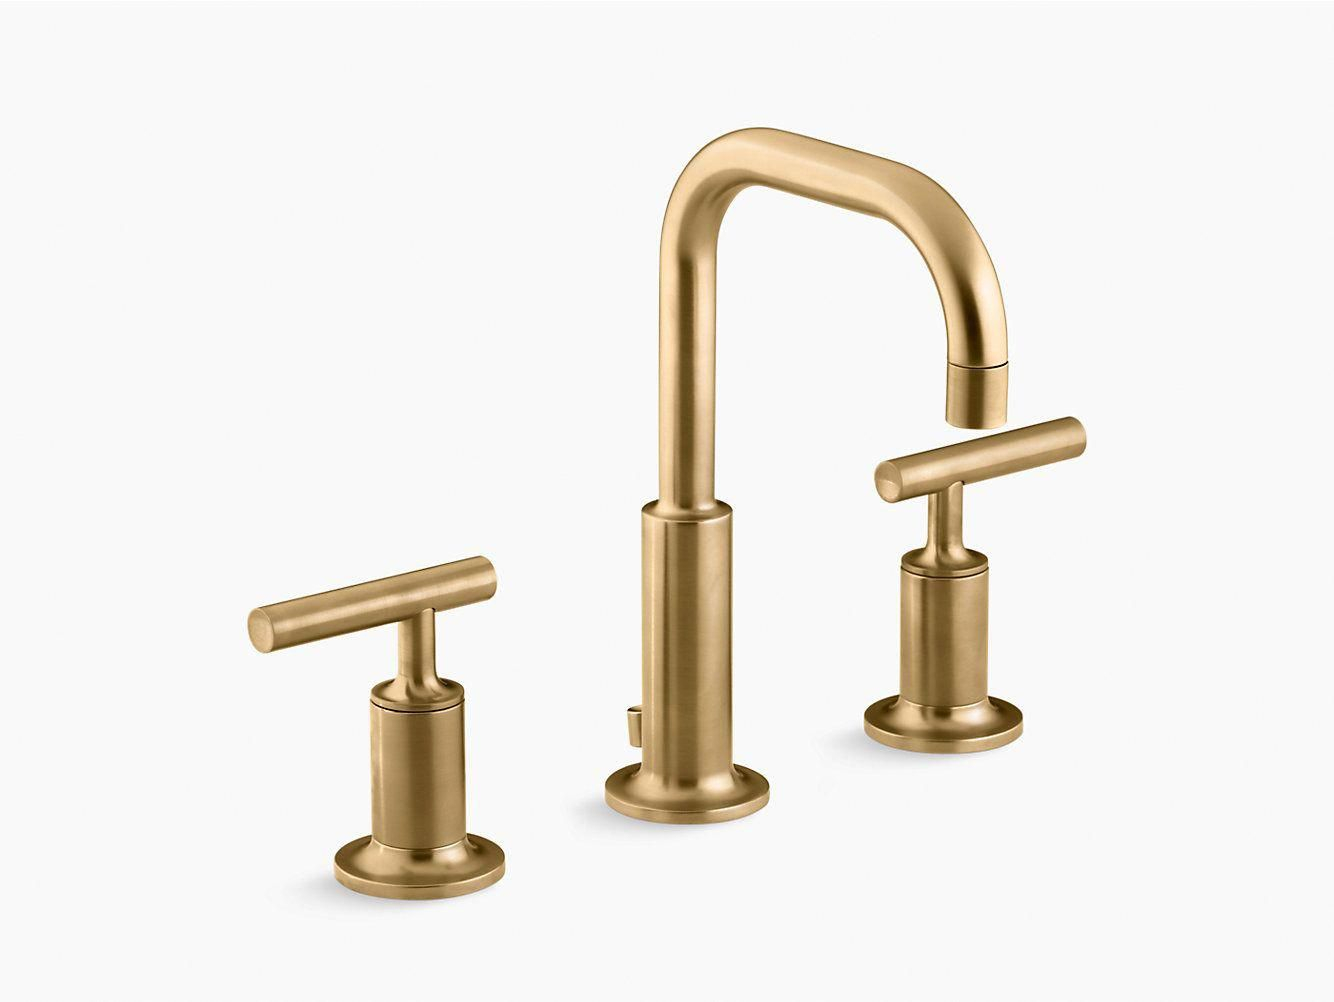 Gold Tone Bathroom Faucets Gold Bathroom Wastebasket In 2019 with regard to proportions 1334 X 1002